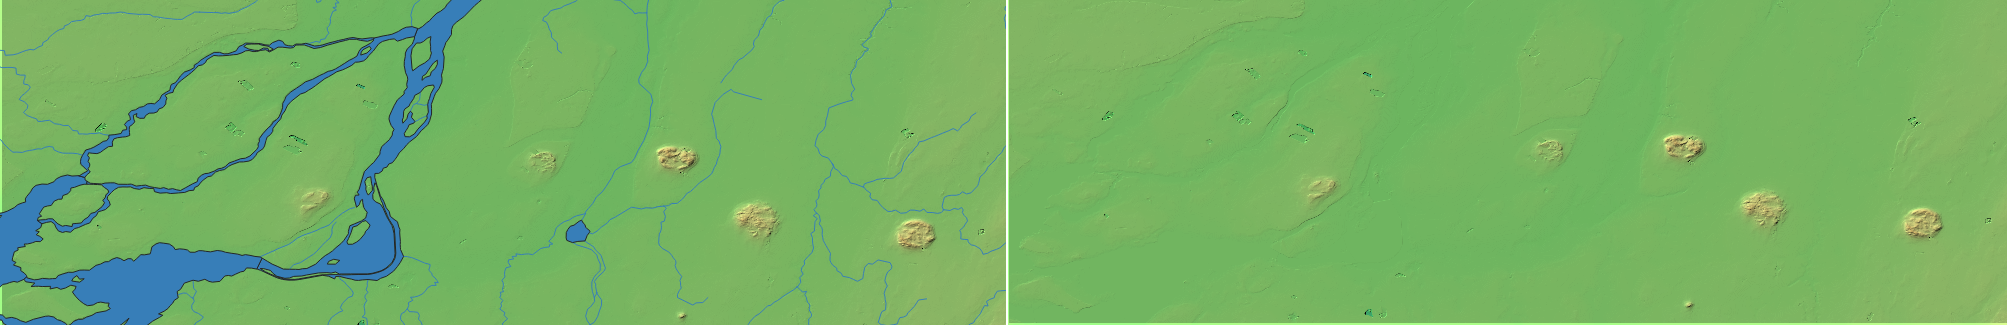 Topographic map of Montreal and the Monteregies Hills. Left with water, right only topography